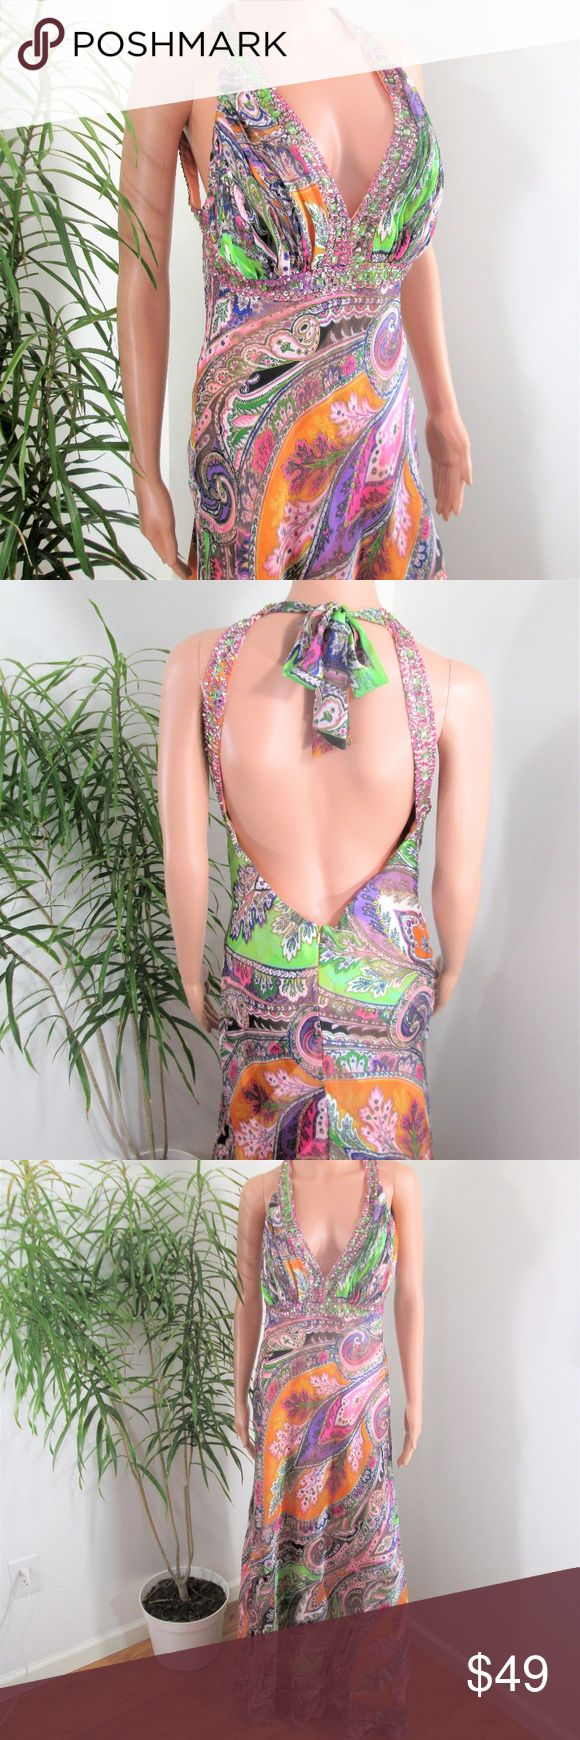 """Ignite Evenings* Multi Color Backless Maxi Gorgeous satiny gown trimmed with  sequins & rhinestones on straps &  across bodice. Deep V halter, zip & tie back. Bell skirt with flounced hem. Full pale peach lining. Paisley print in lilac, purple, rose, pink, green, gold, apricot.  Measured flat, 16"""" pit to pit. 14"""" across waist. 59"""" long from shoulder to hem. Model is 5' 9'', dress touches floor.  Vacation Cruise Special Occasion Prom HOCO  in EUC Ignite Evenings Dresses Backless"""